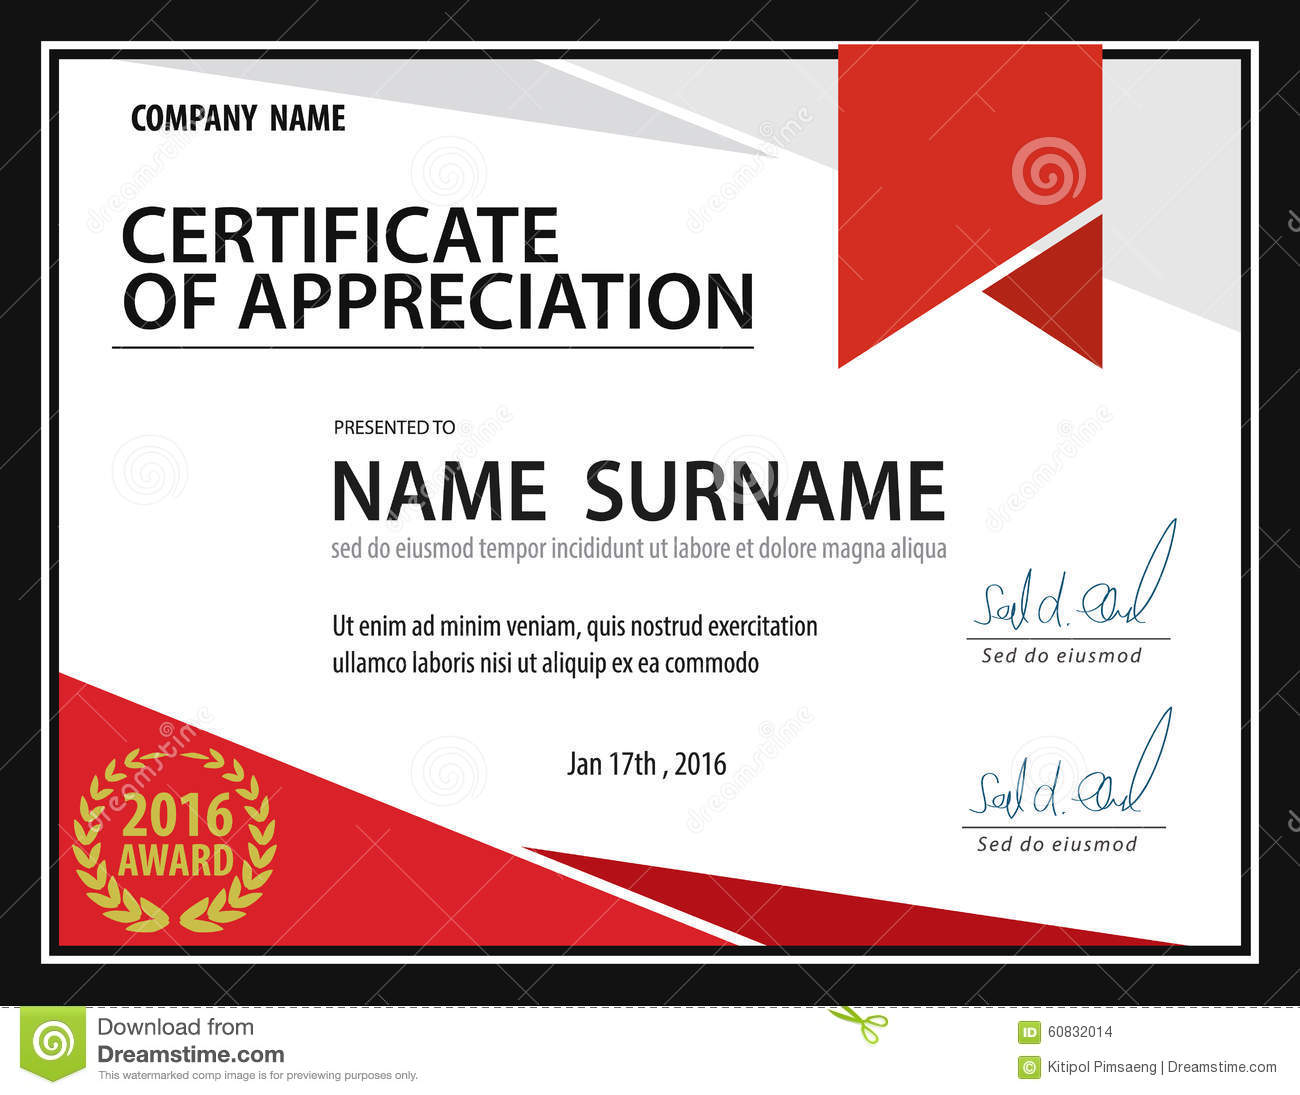 Excellence award certificate template free - visualbrains.info